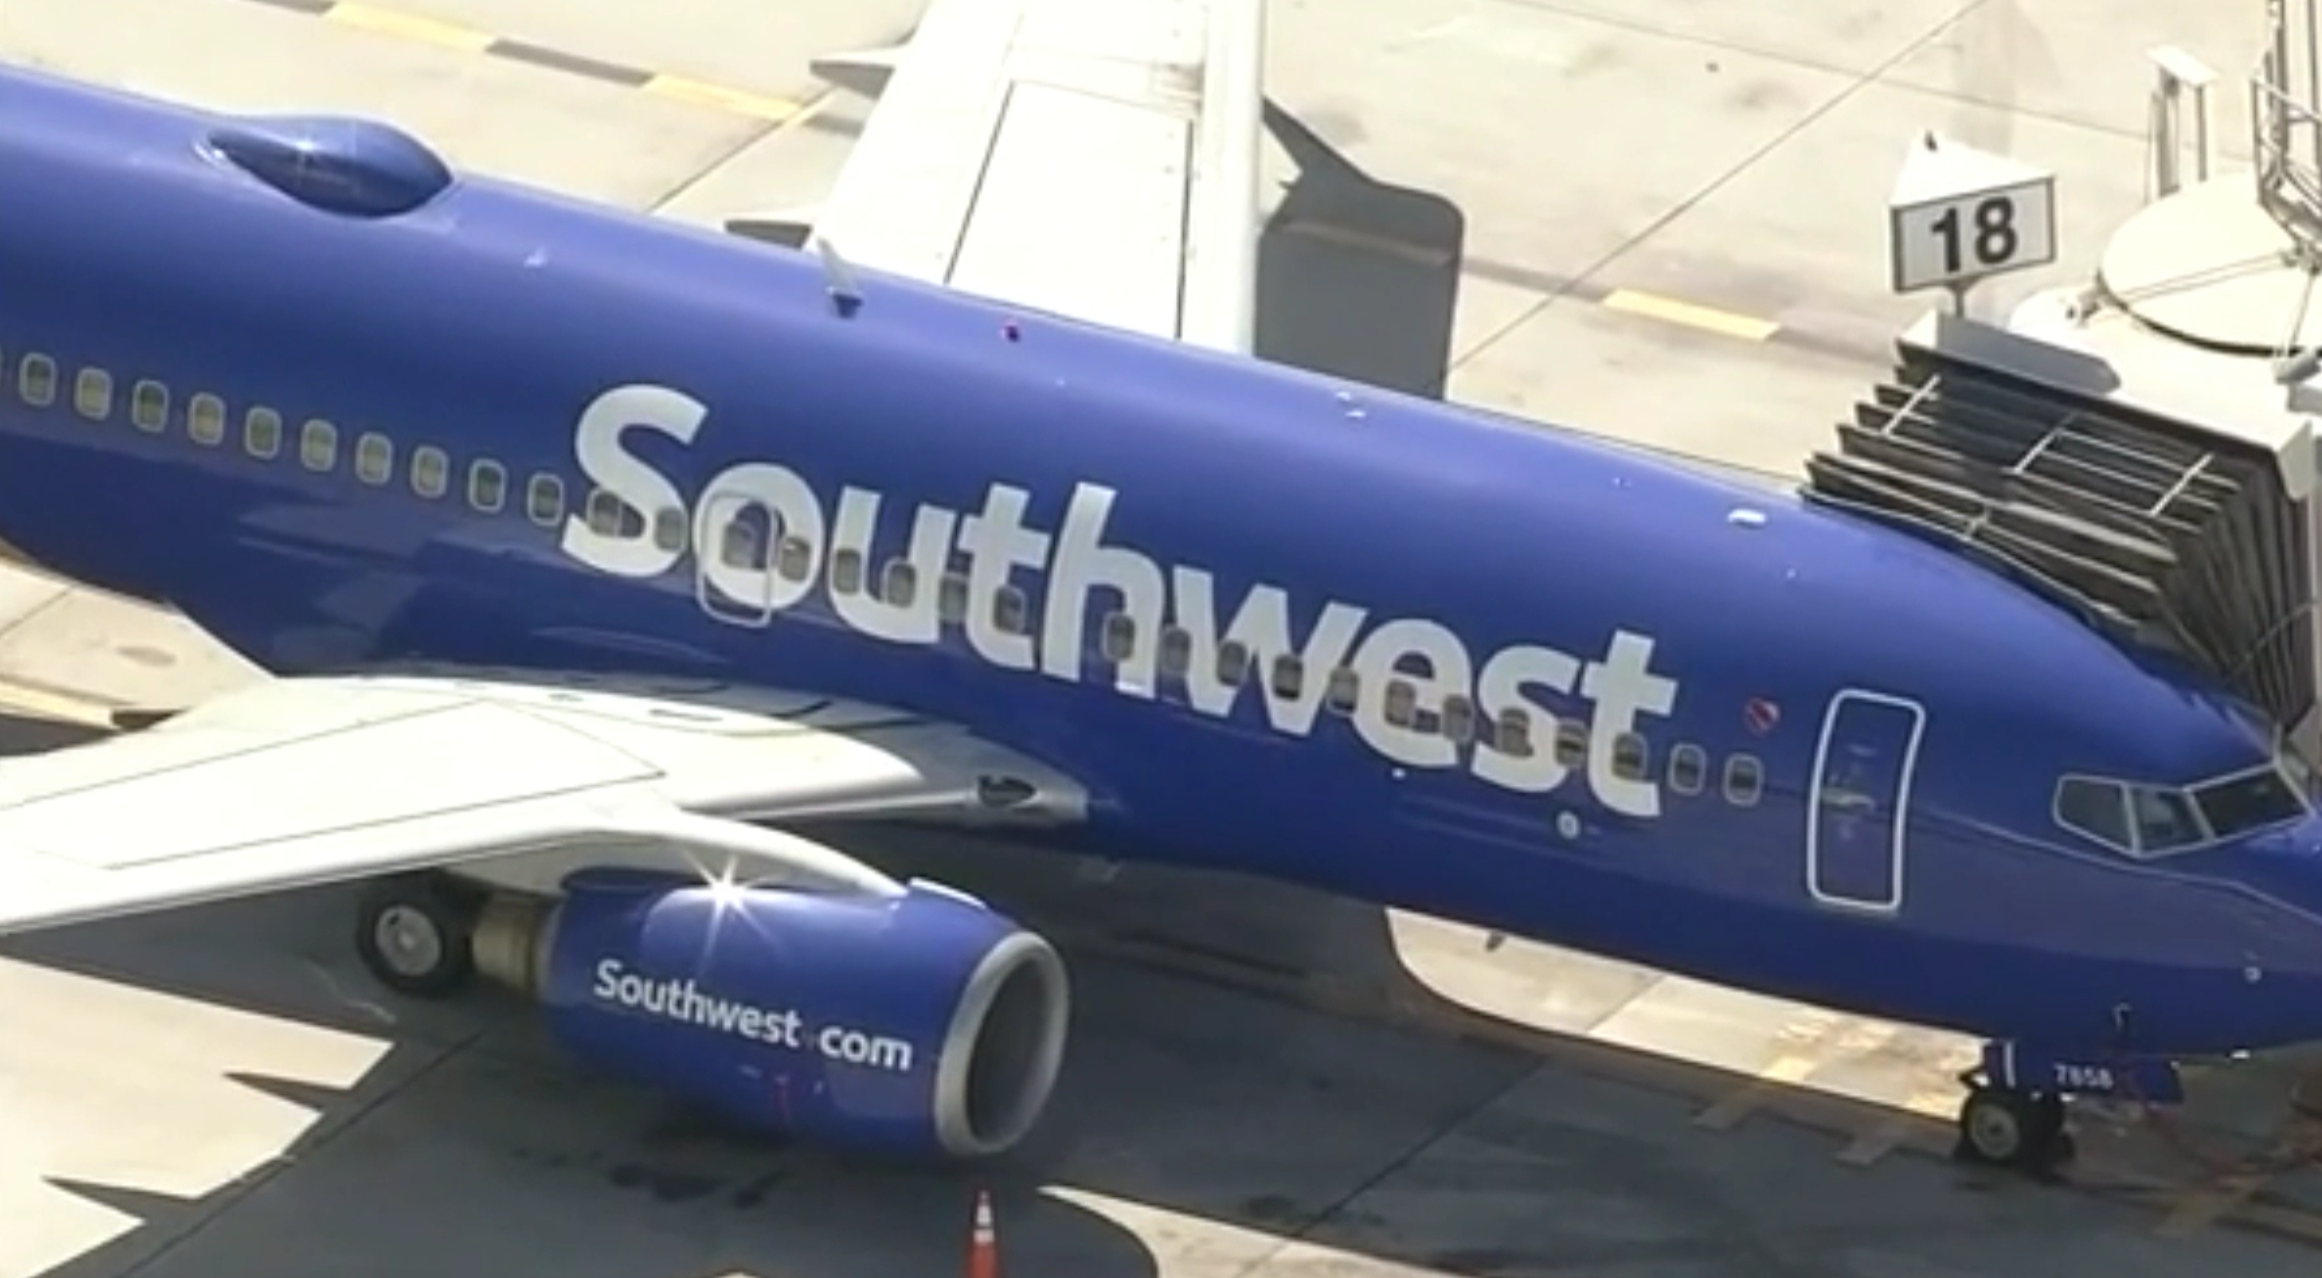 Southwest Airlines advertises its daily flight destinations from Santa Barbara, including Vegas